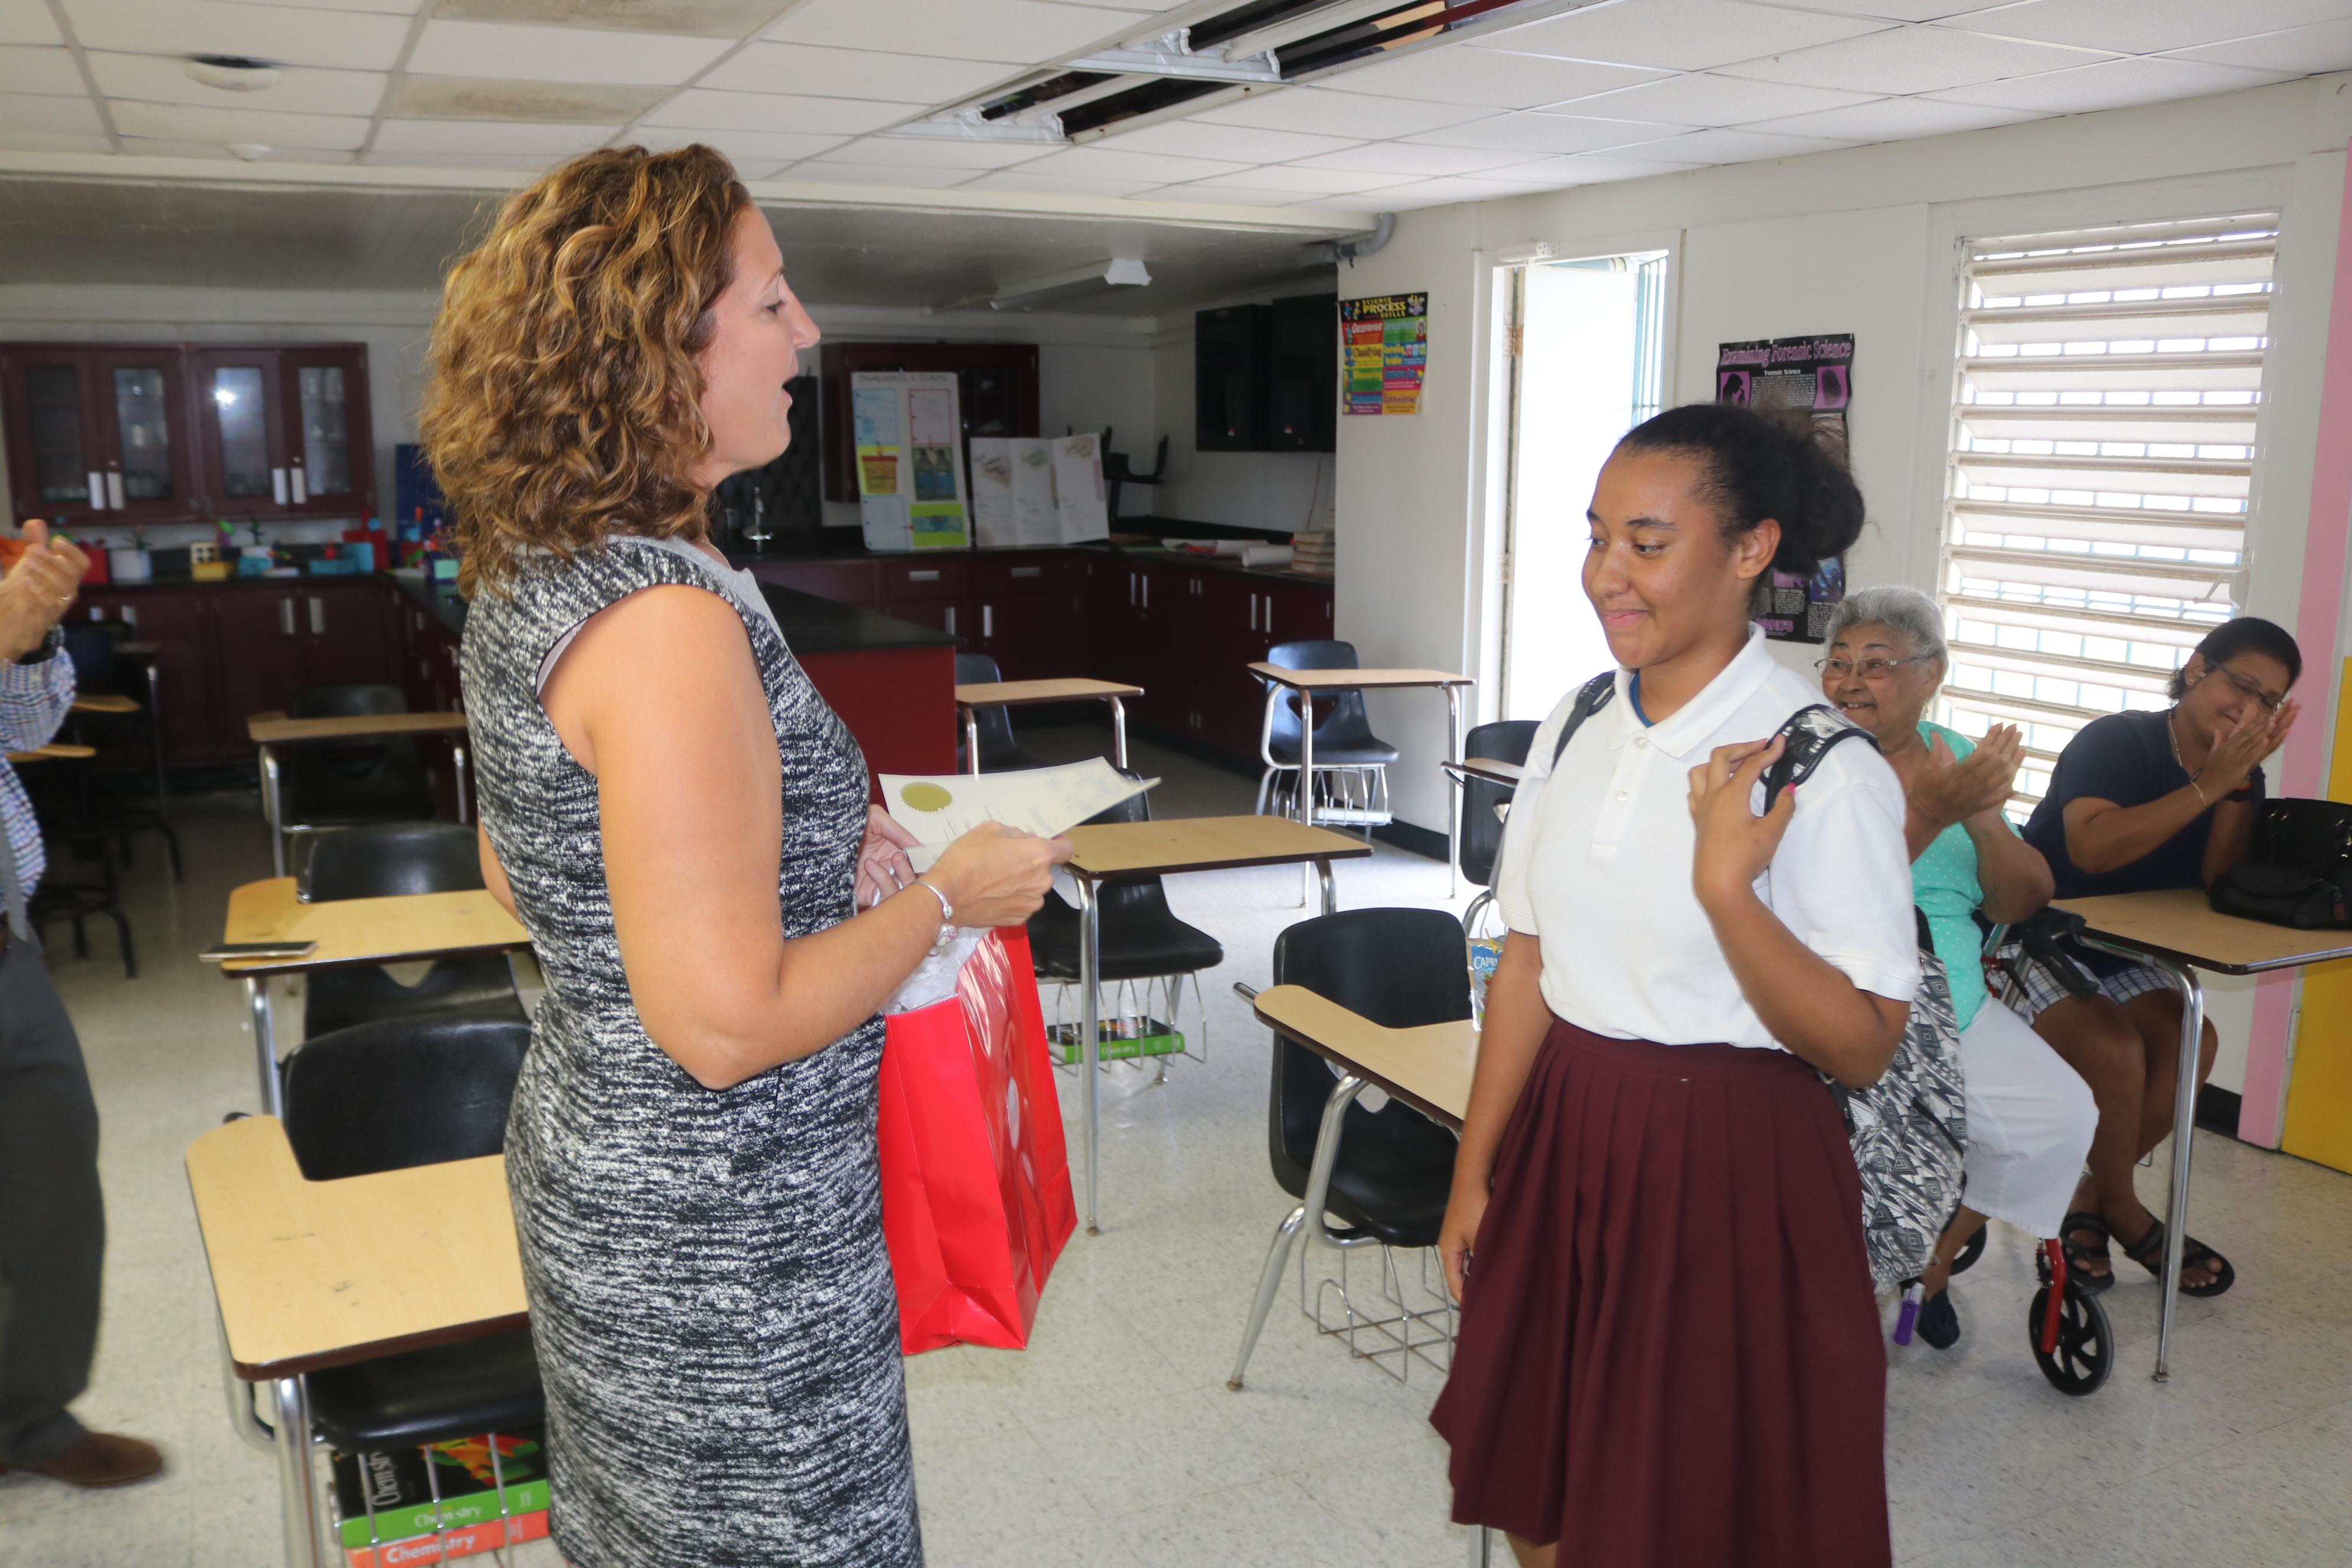 Achieve 3000 Project Manager Julie Eckard presents Kiara Ortiz with certificate and gift. .JPG